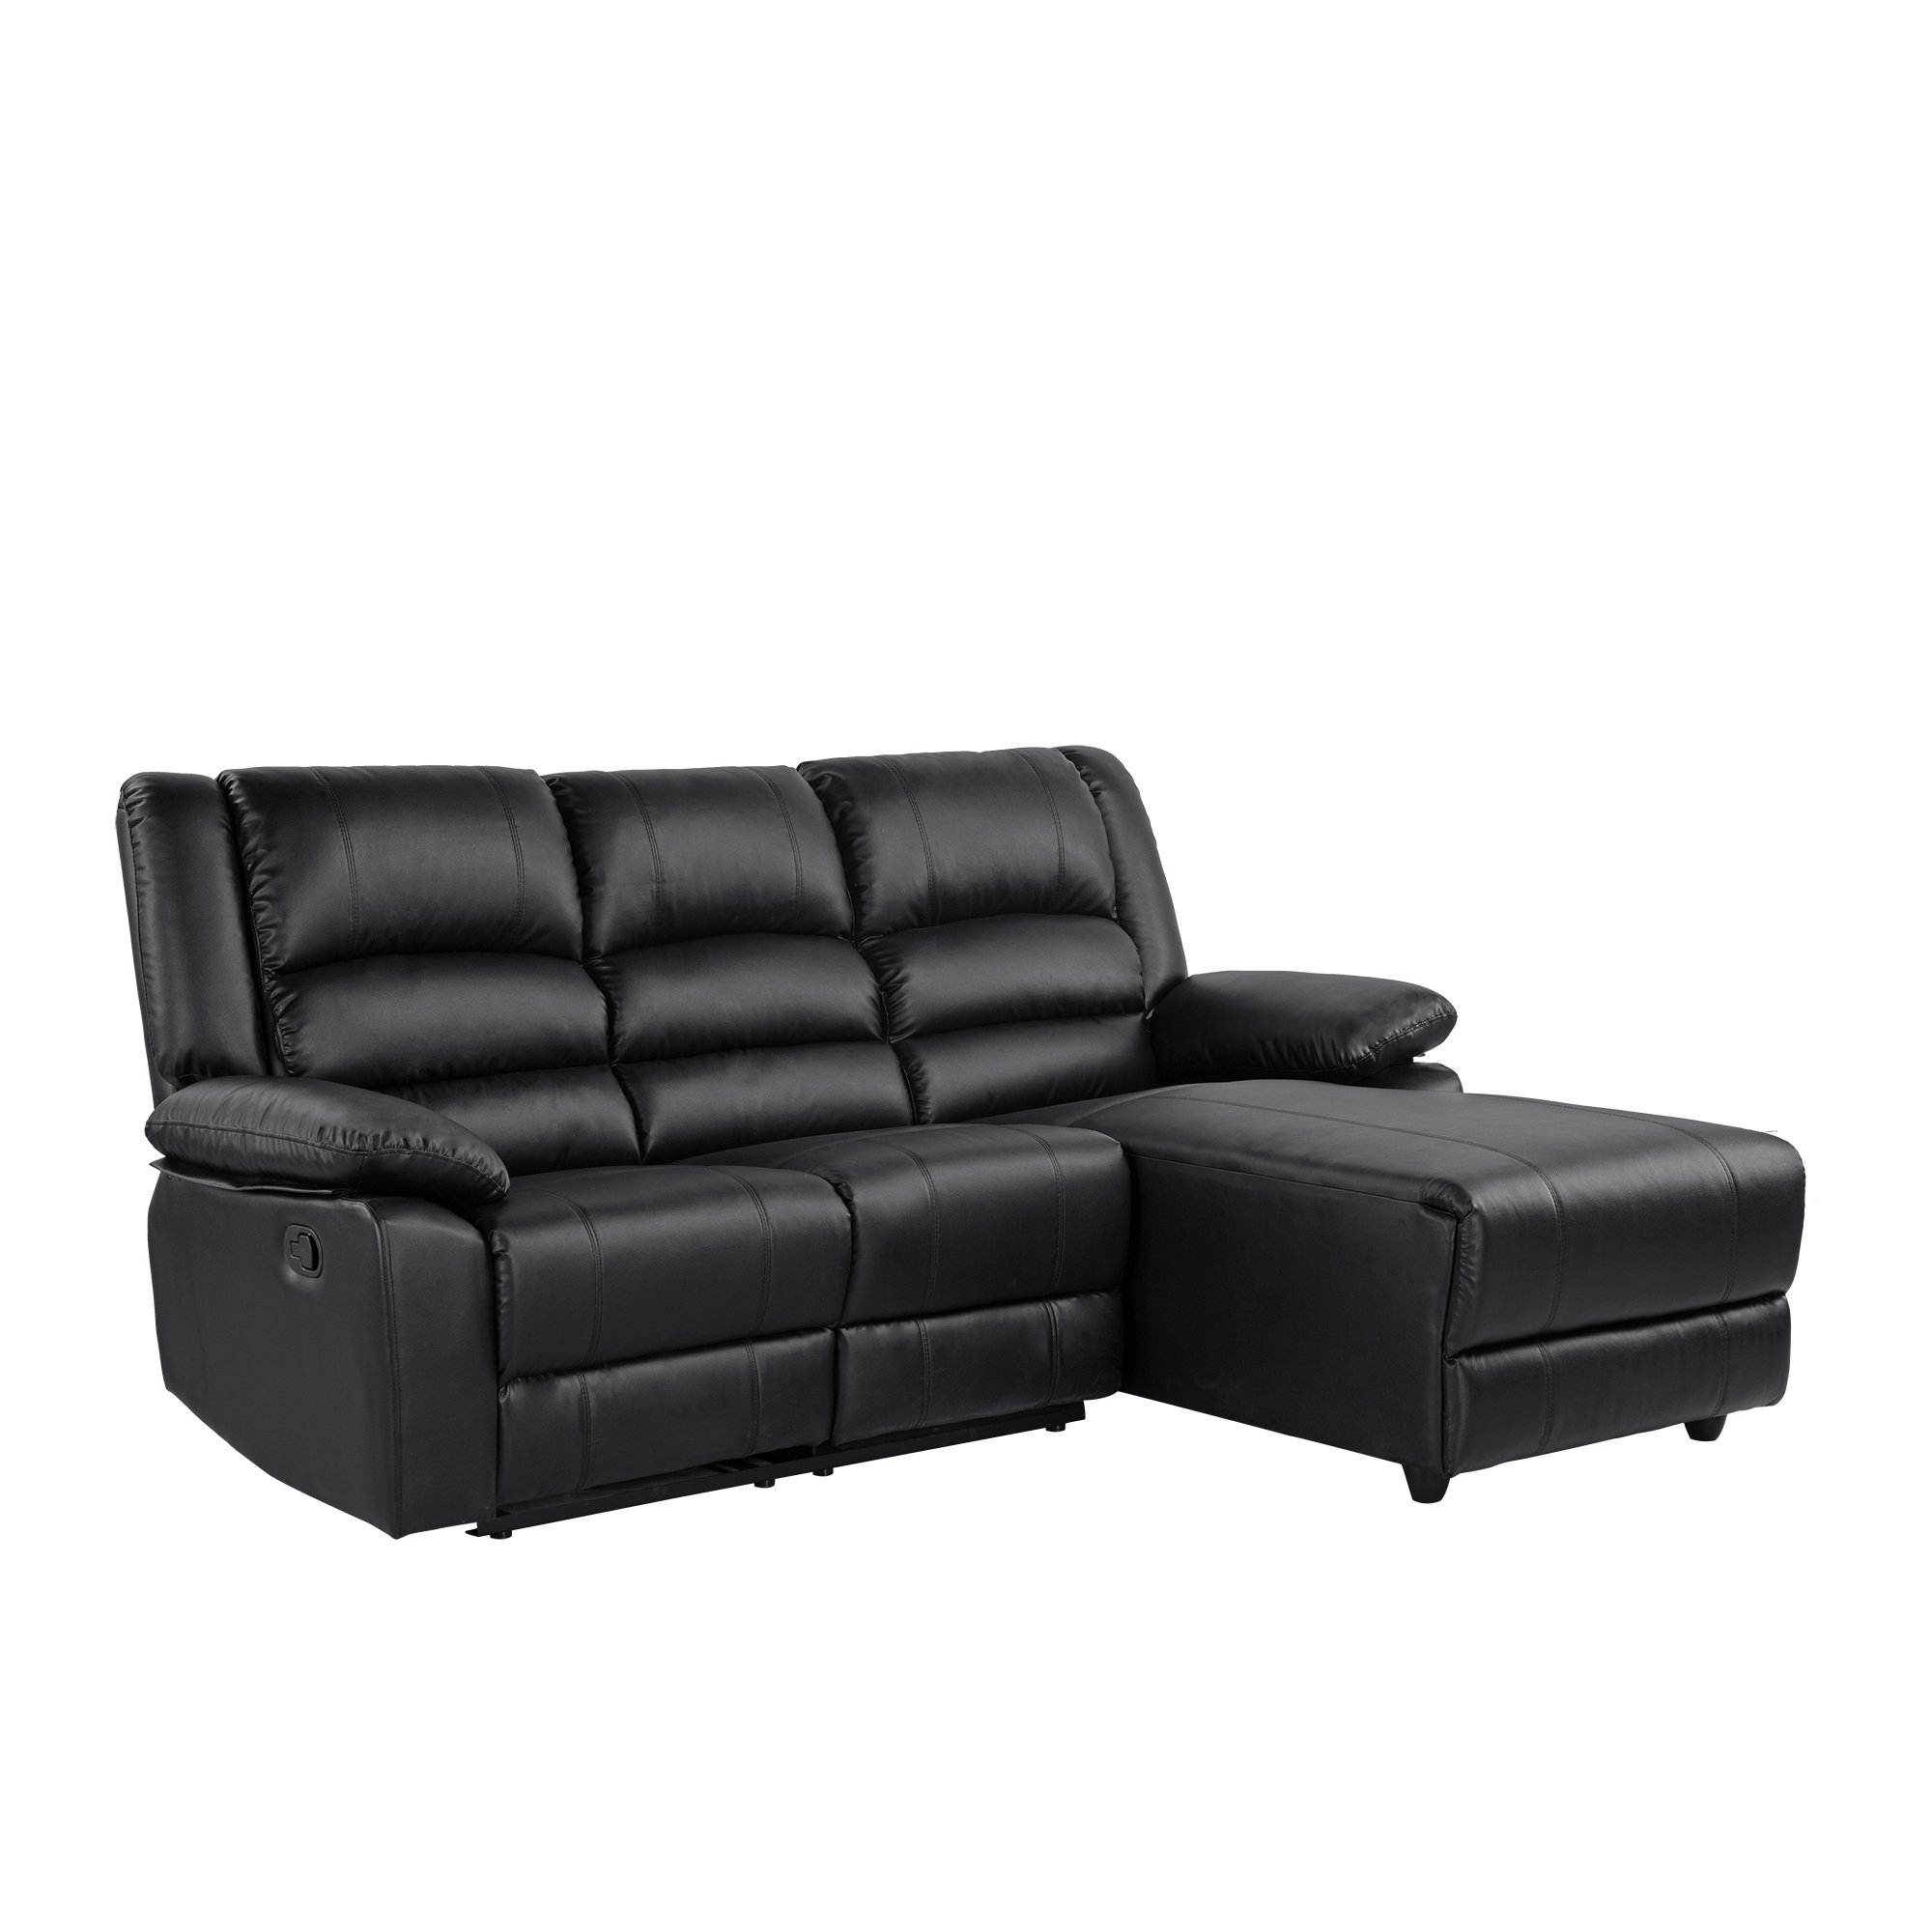 Black Bonded Leather Loveseat Recliner Right Facing Chaise With Plush Seating